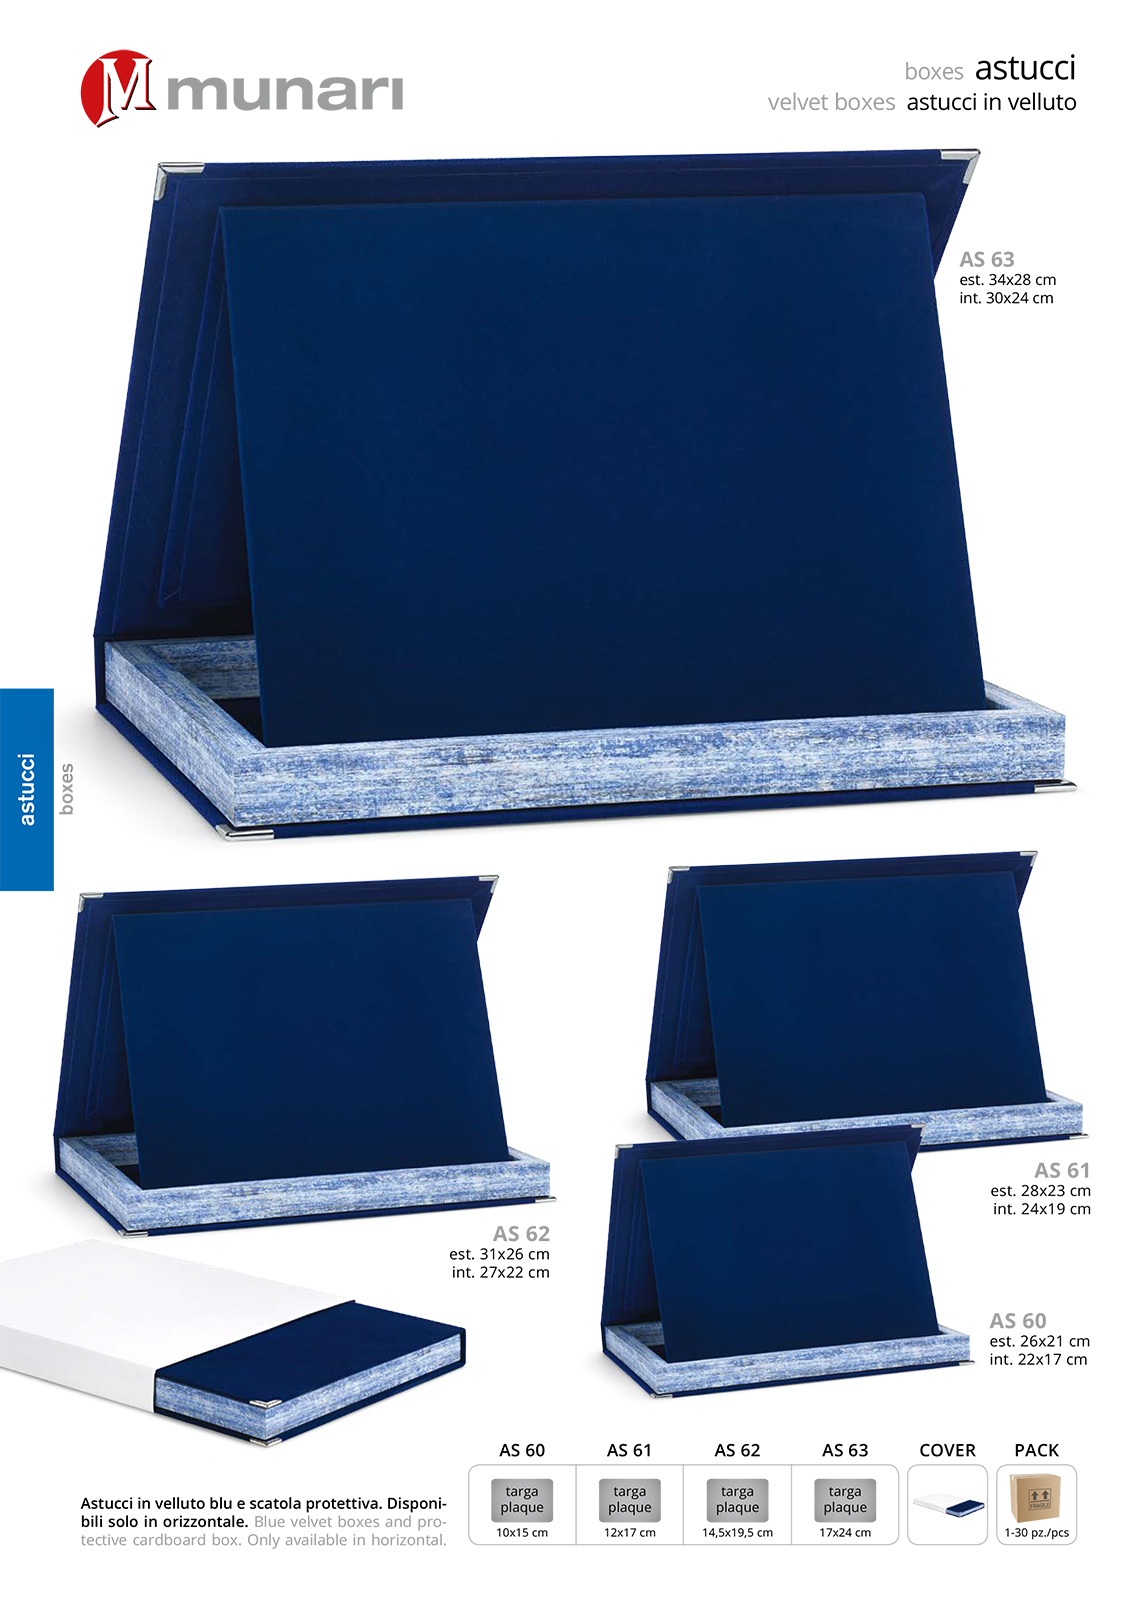 Astucci per targhe in velluto blu serie AS 60